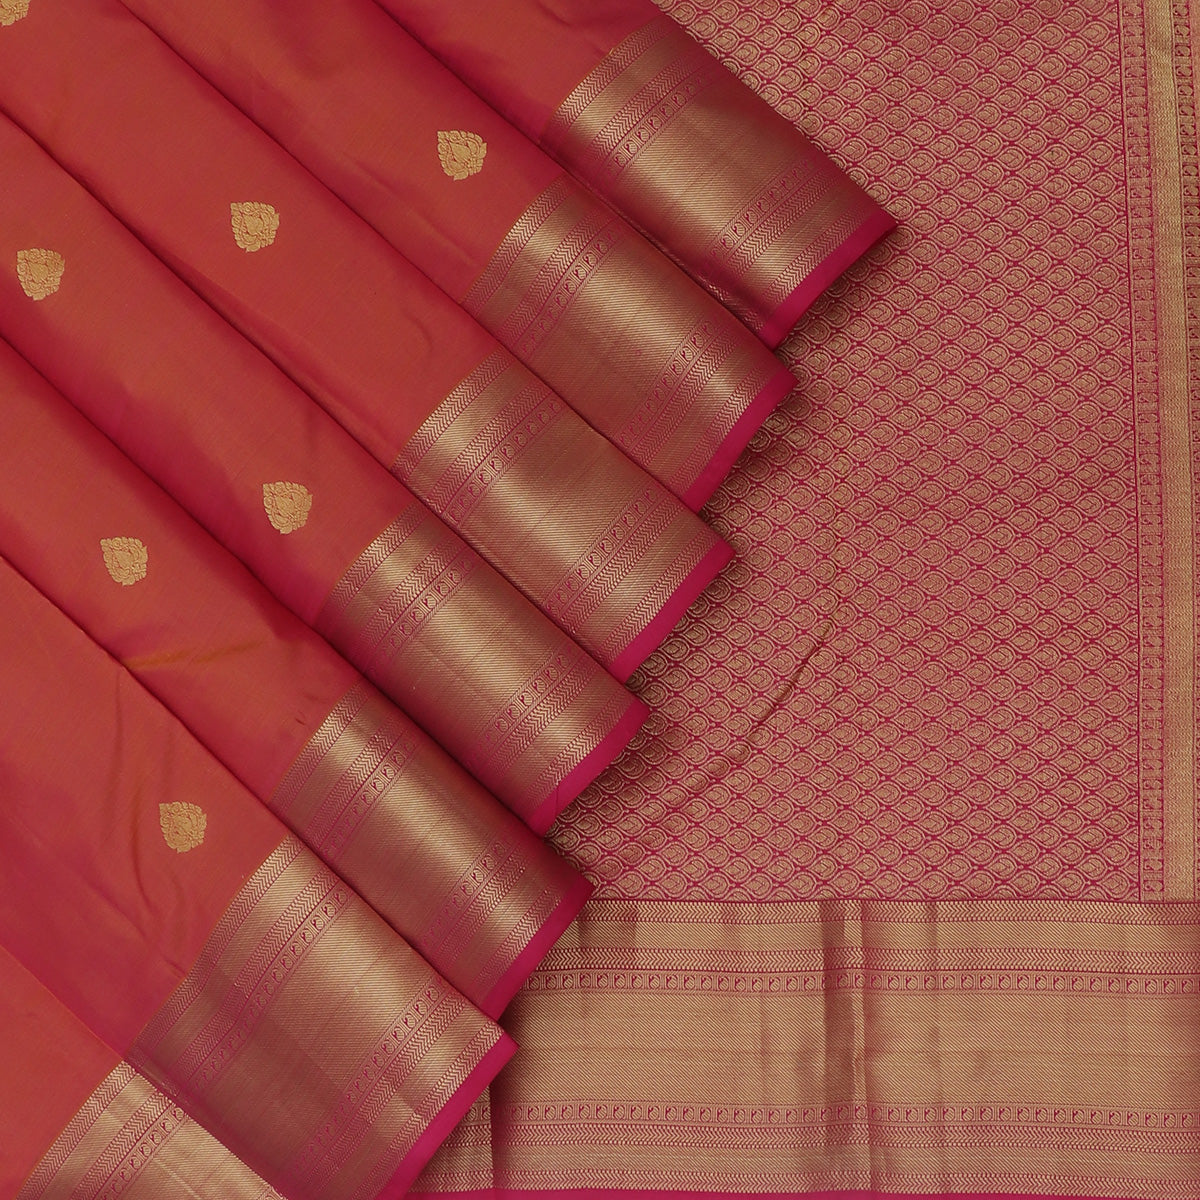 kanjivaram Silk Saree Dual shade of Pink and Honey color with Butta and Zari border